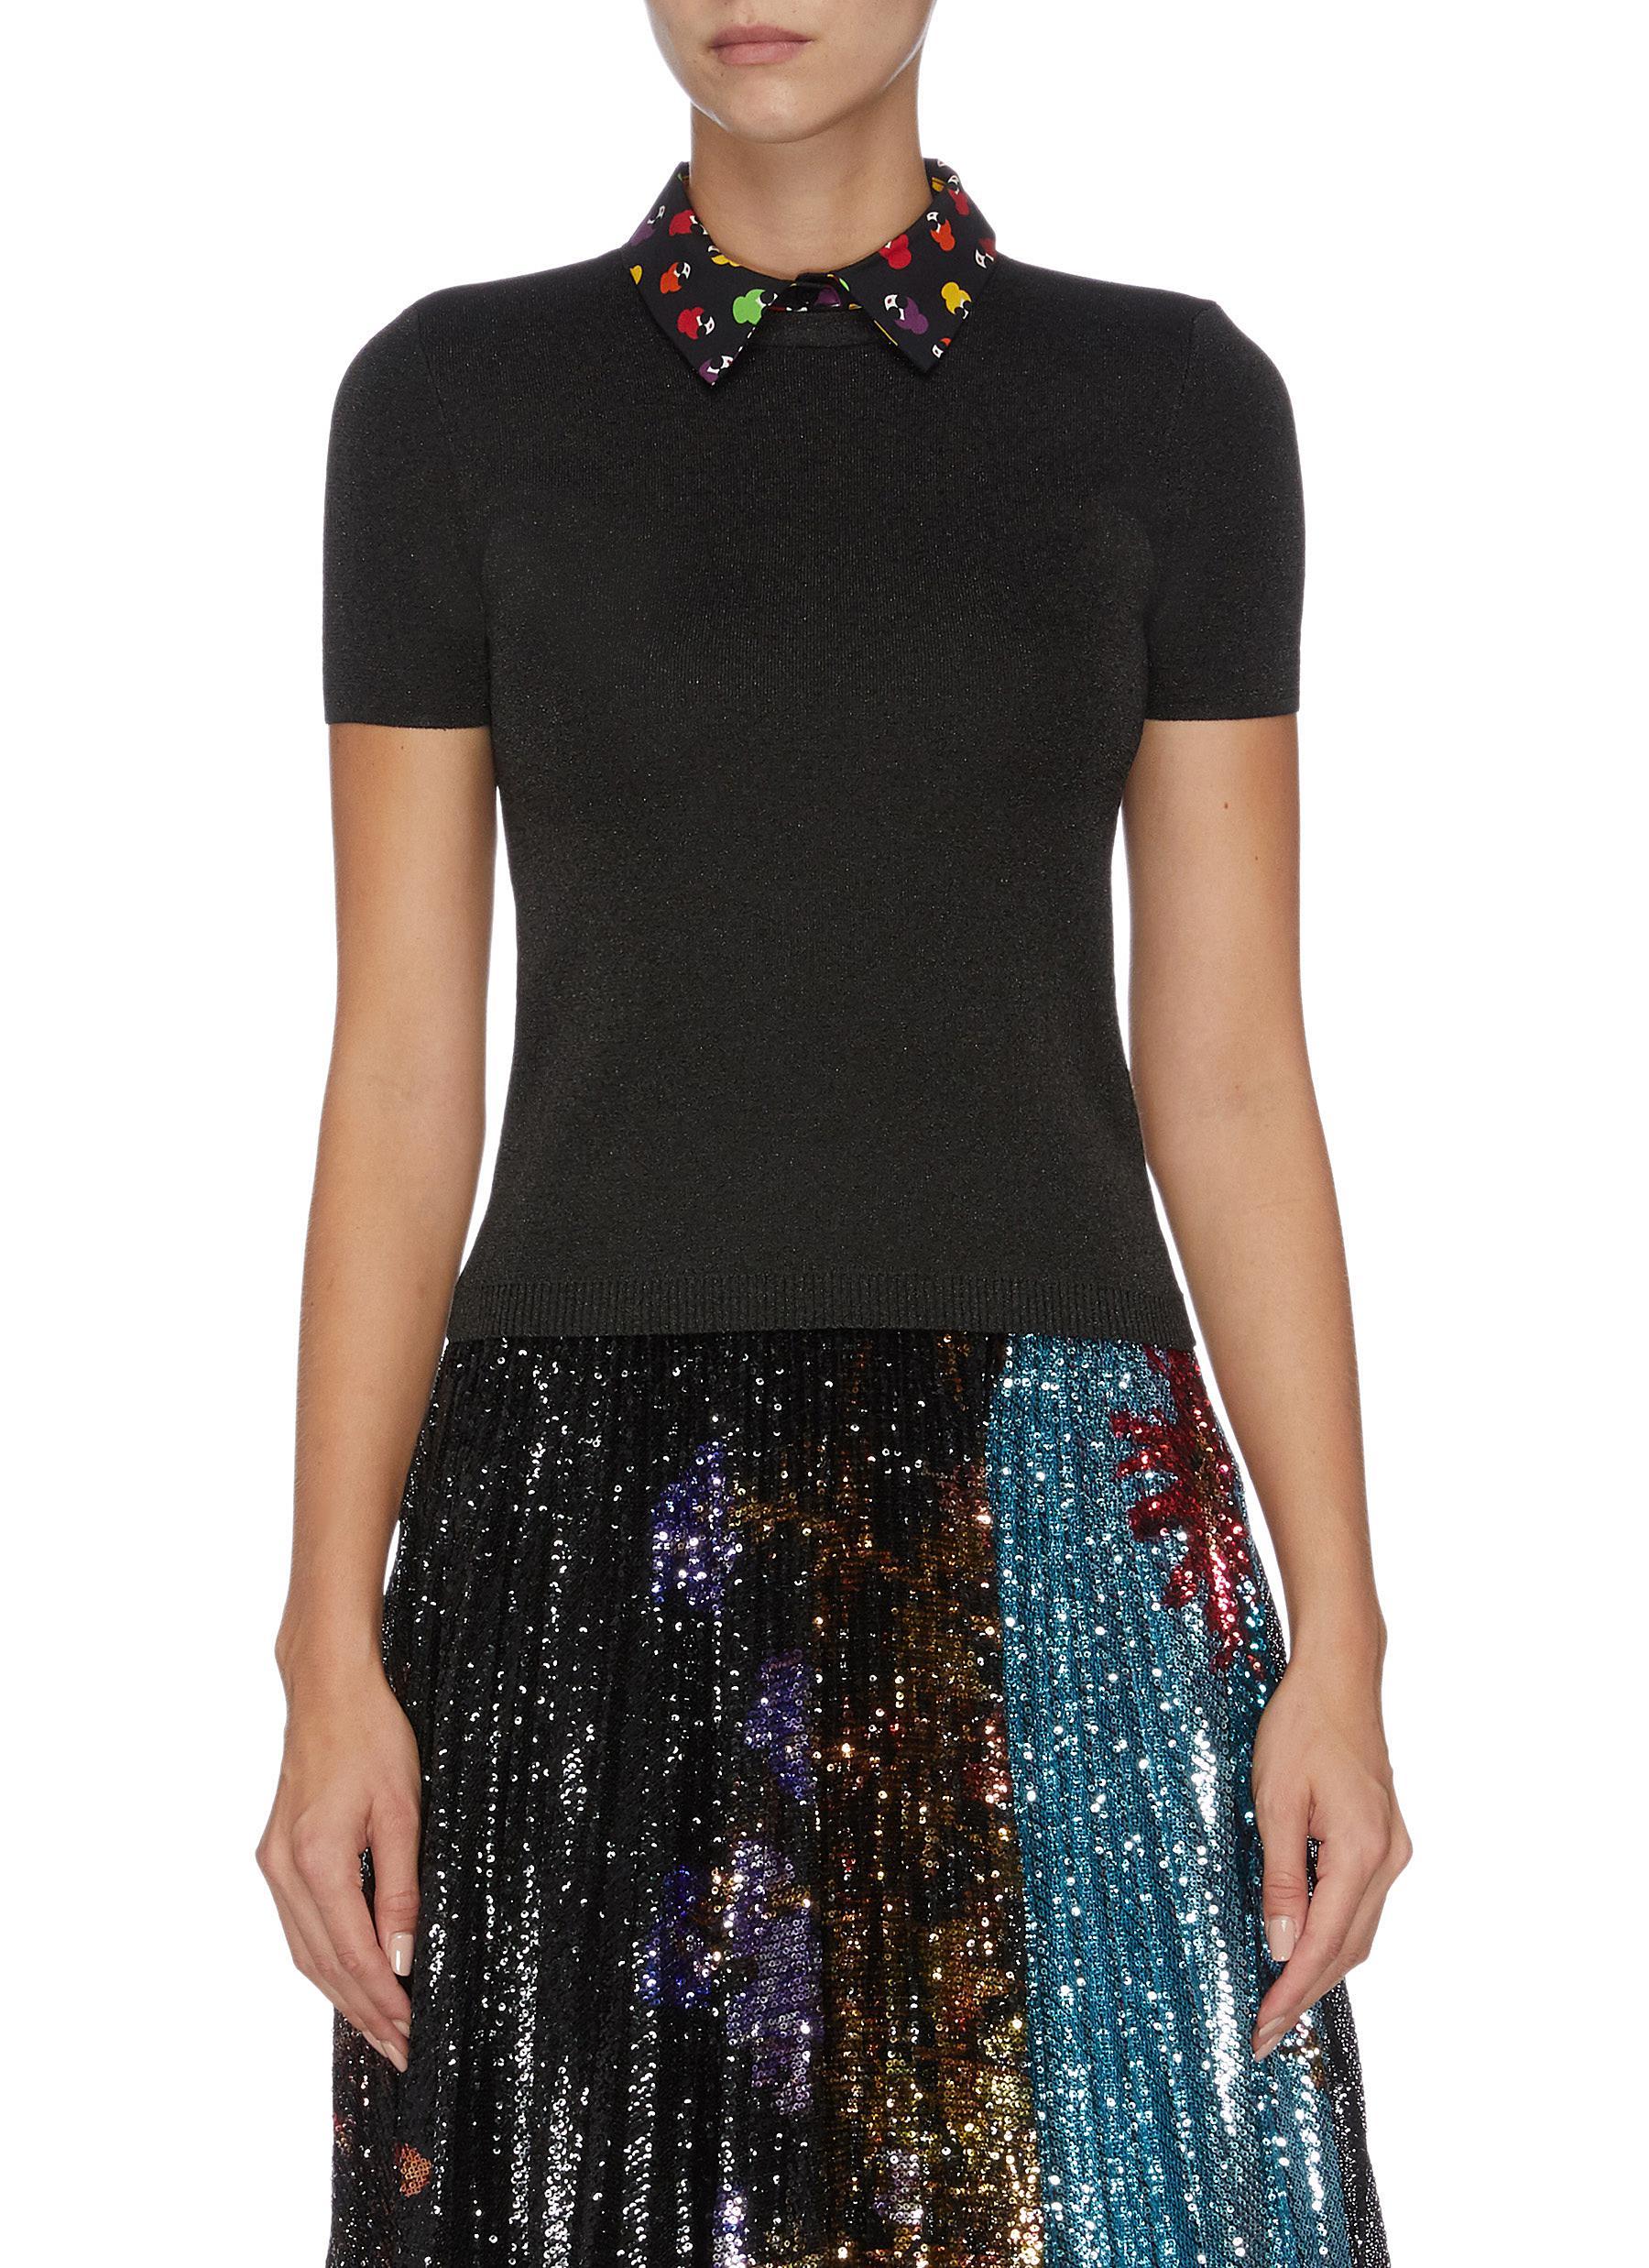 Aster graphic print collar knit top by Alice + Olivia